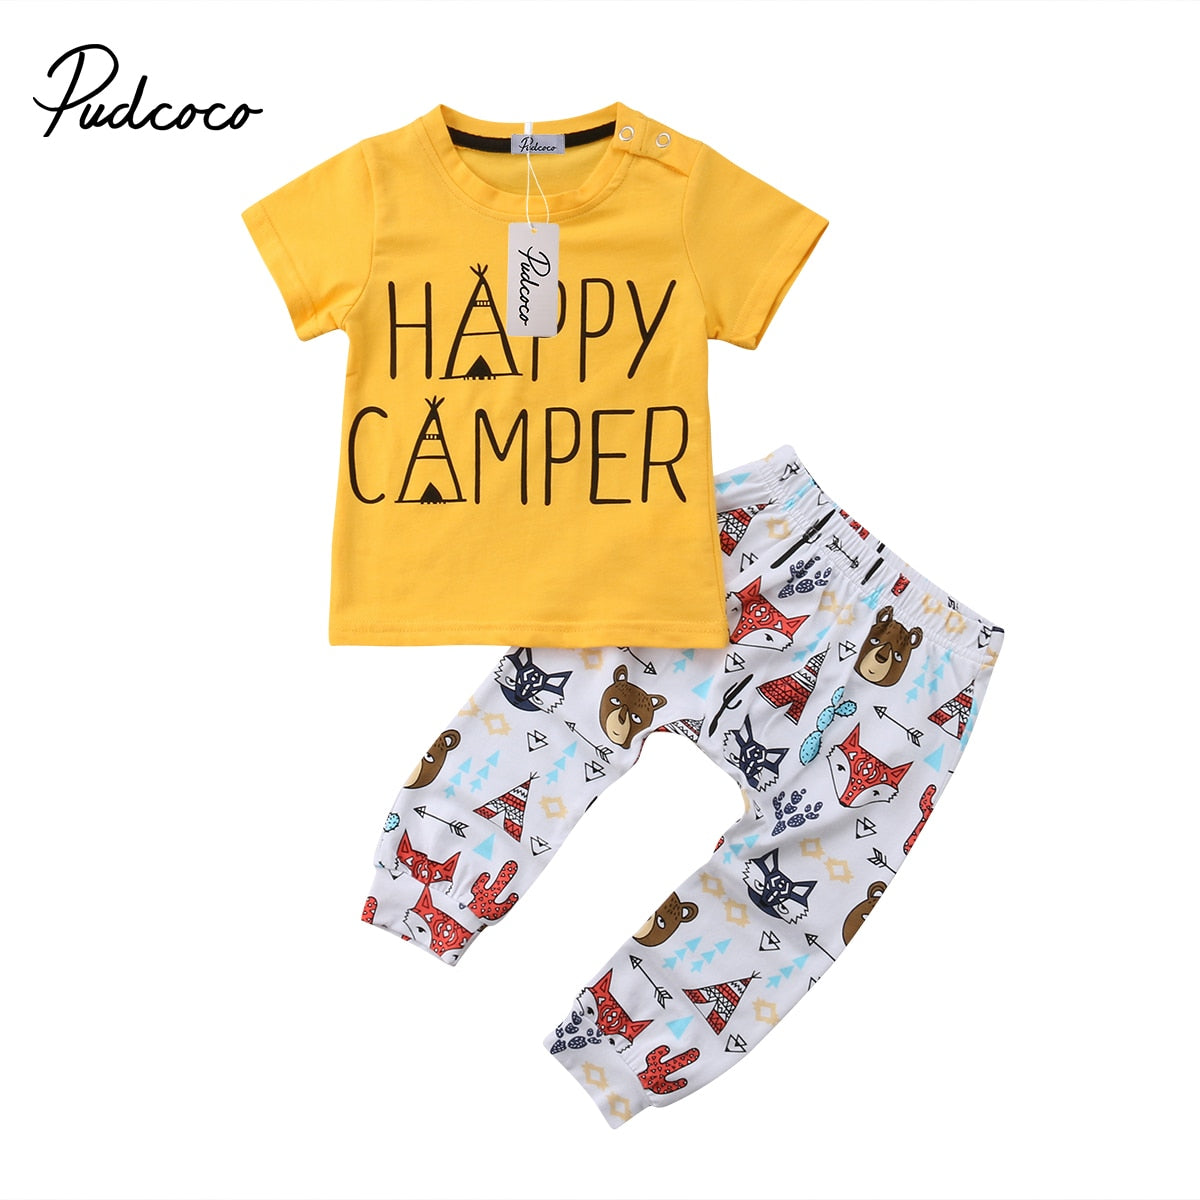 2018 Brand New Animals Newborn Toddler Infant Baby Boys Girl Tops T shirt Pants Outfit 2Pcs Set Happy Camper Summer Clothes-eosegal